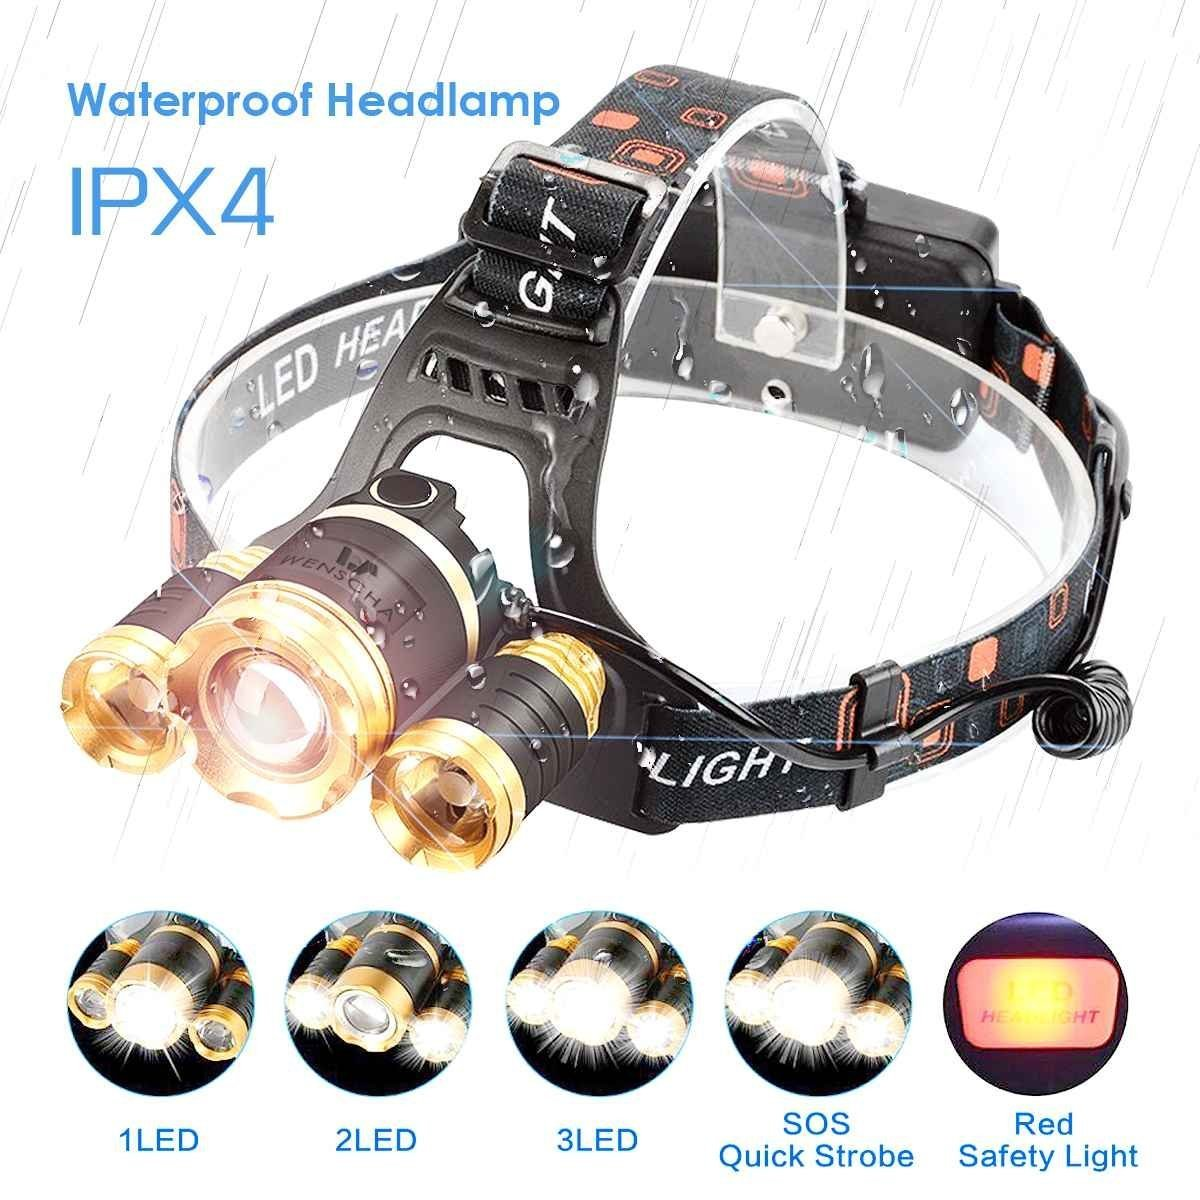 Wenscha LED Head Torch, Rechargeable Powerful Camping Lamp 4 Modes Light T6 Focus with Elastic Strap and Swivel for Hiking Camping Trekking Adventure (battery included and a small gift)